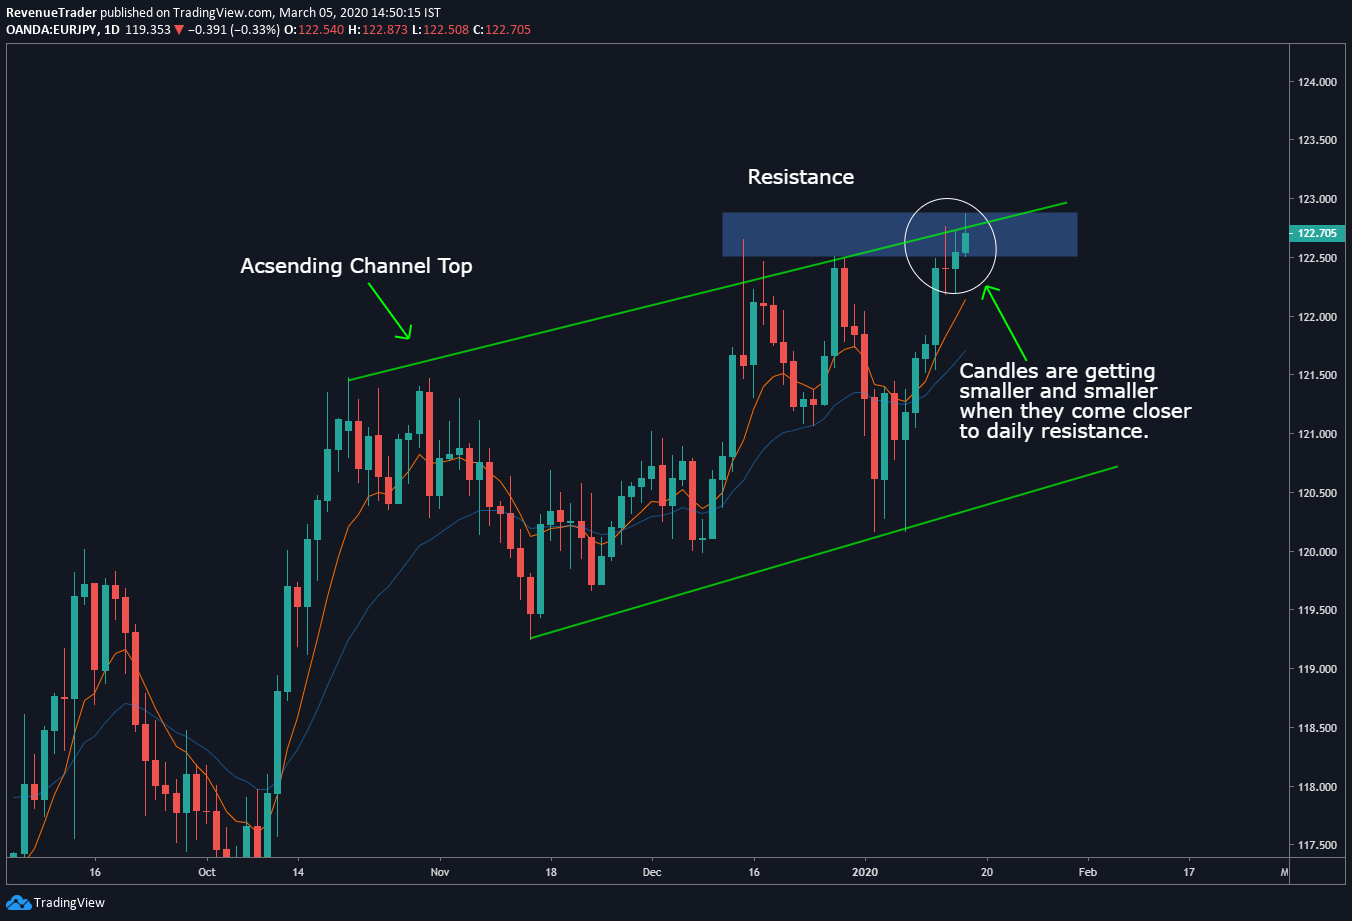 price is approaching to the resistance level